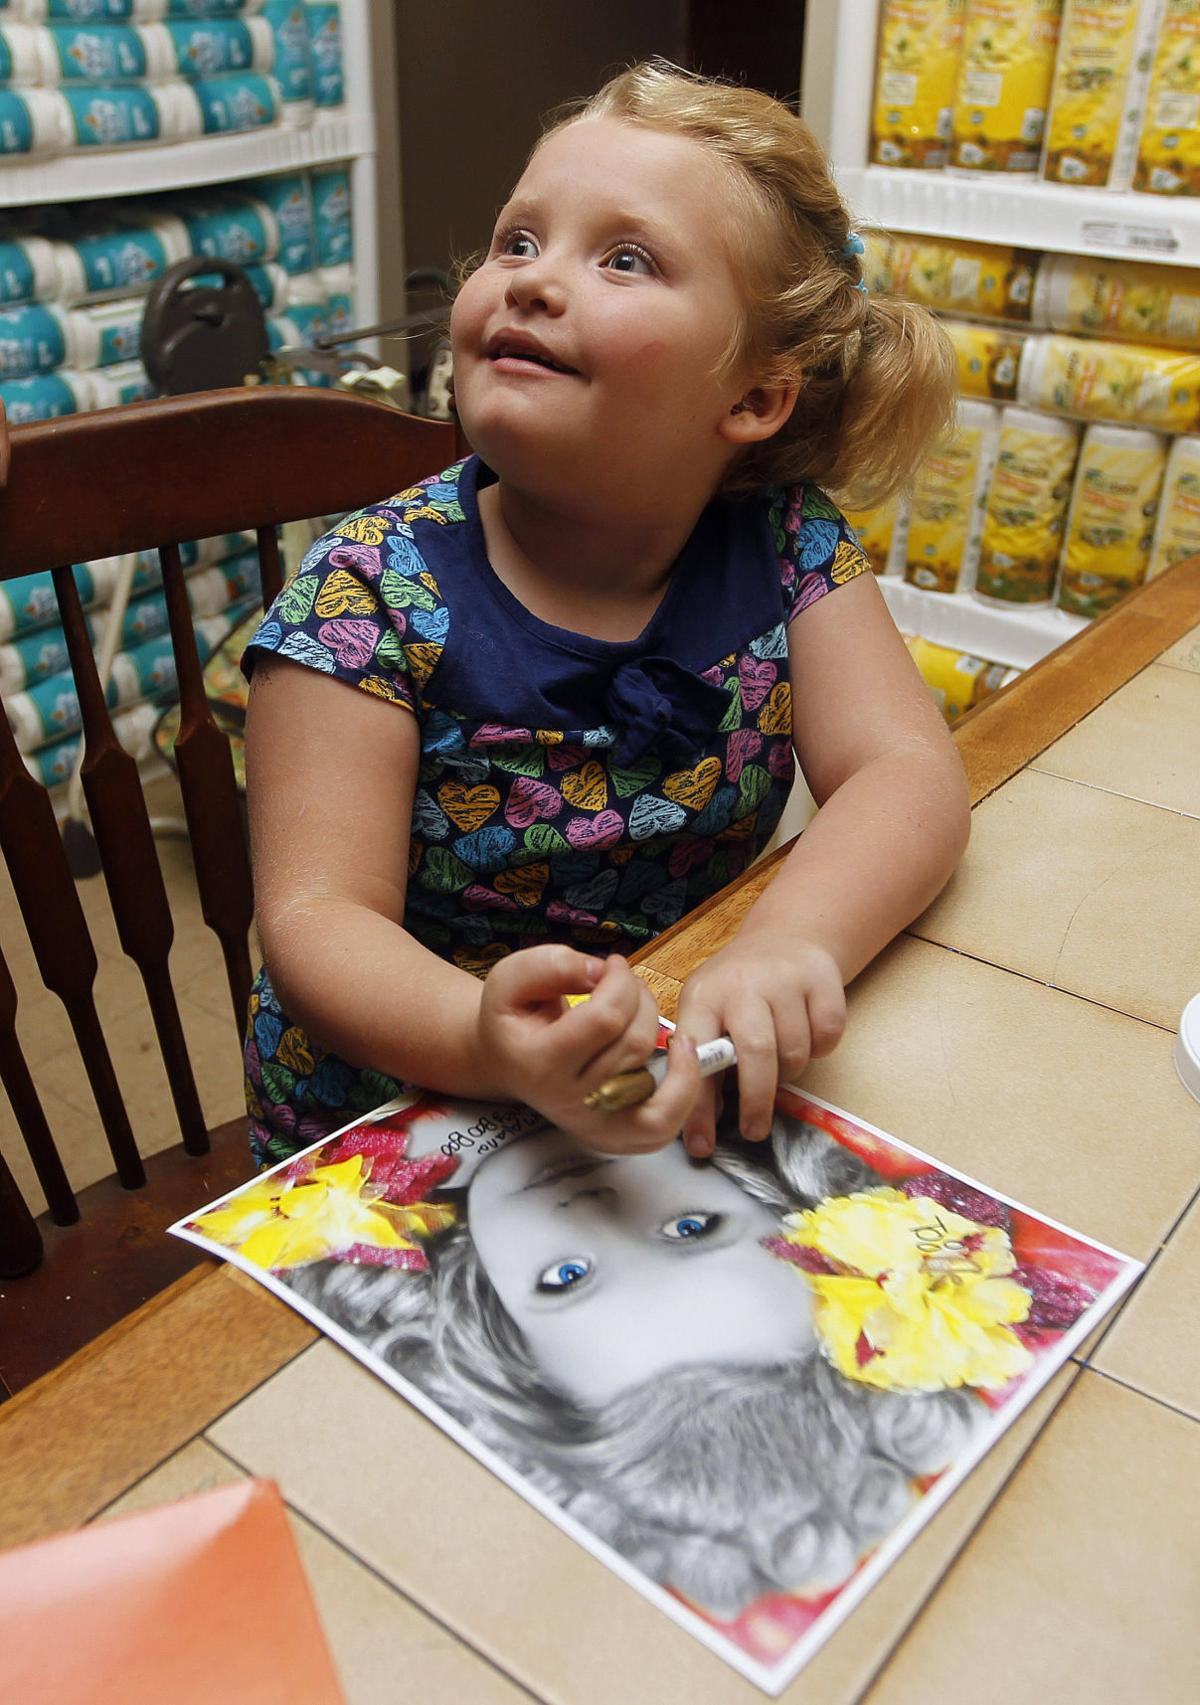 Honey Boo Boo 7-year-old has hometown fans and critics